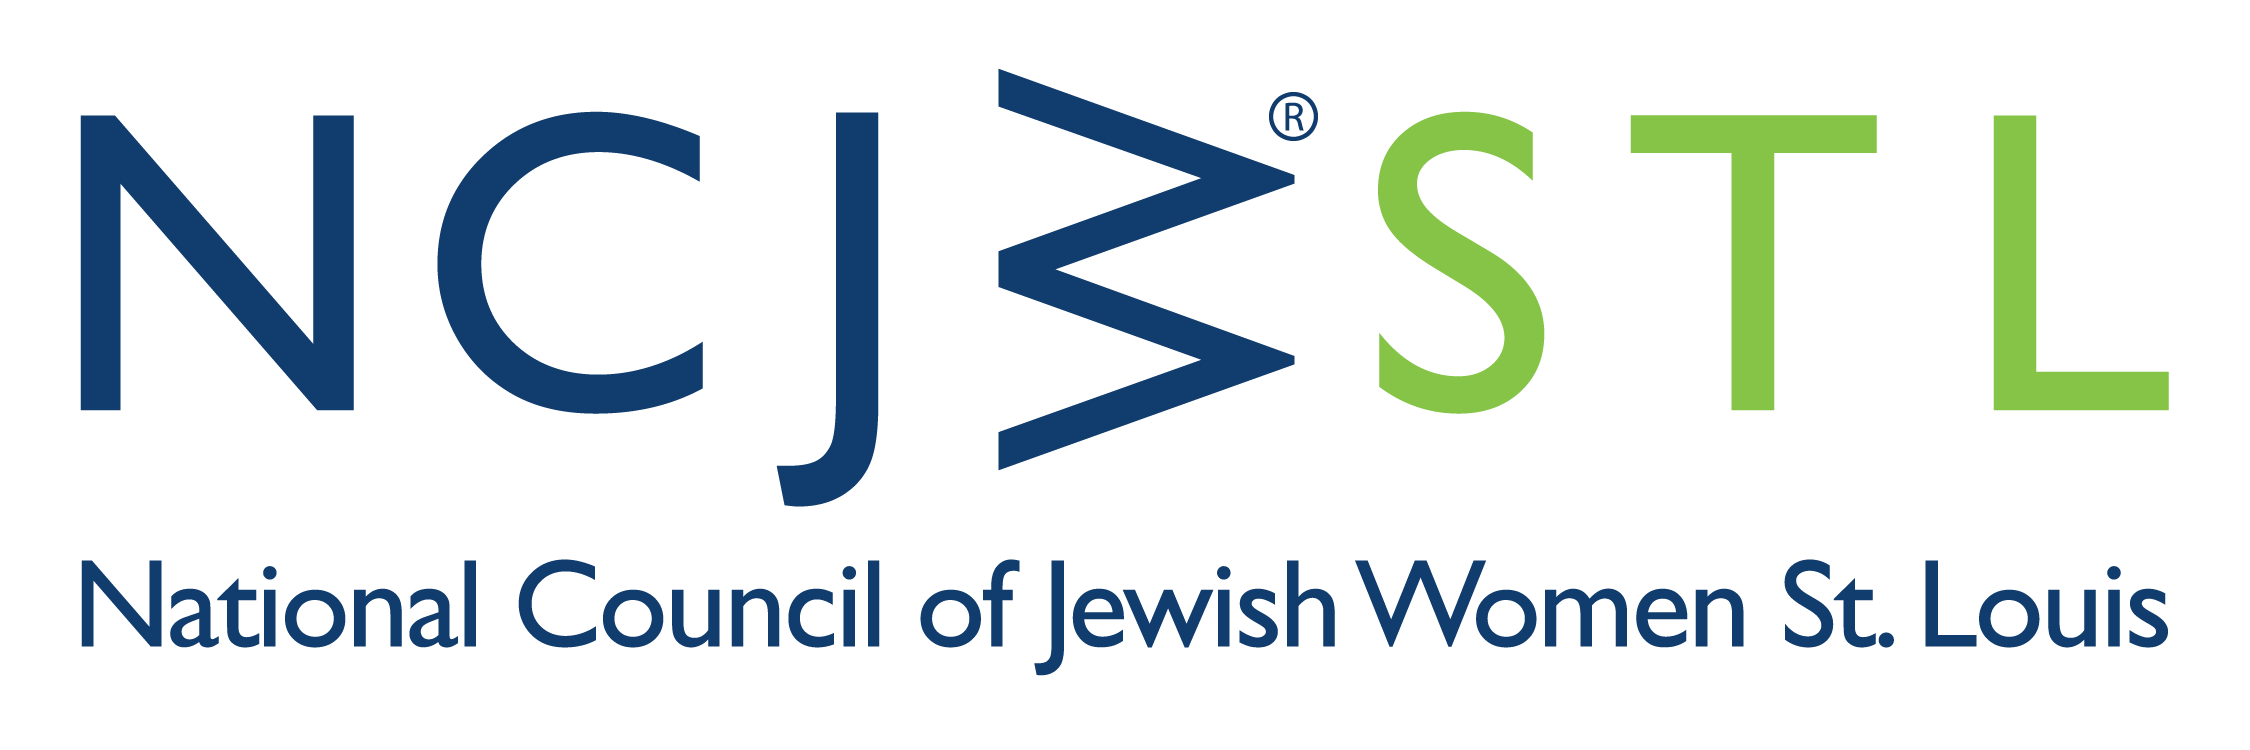 National Council of Jewish Women St. Louis